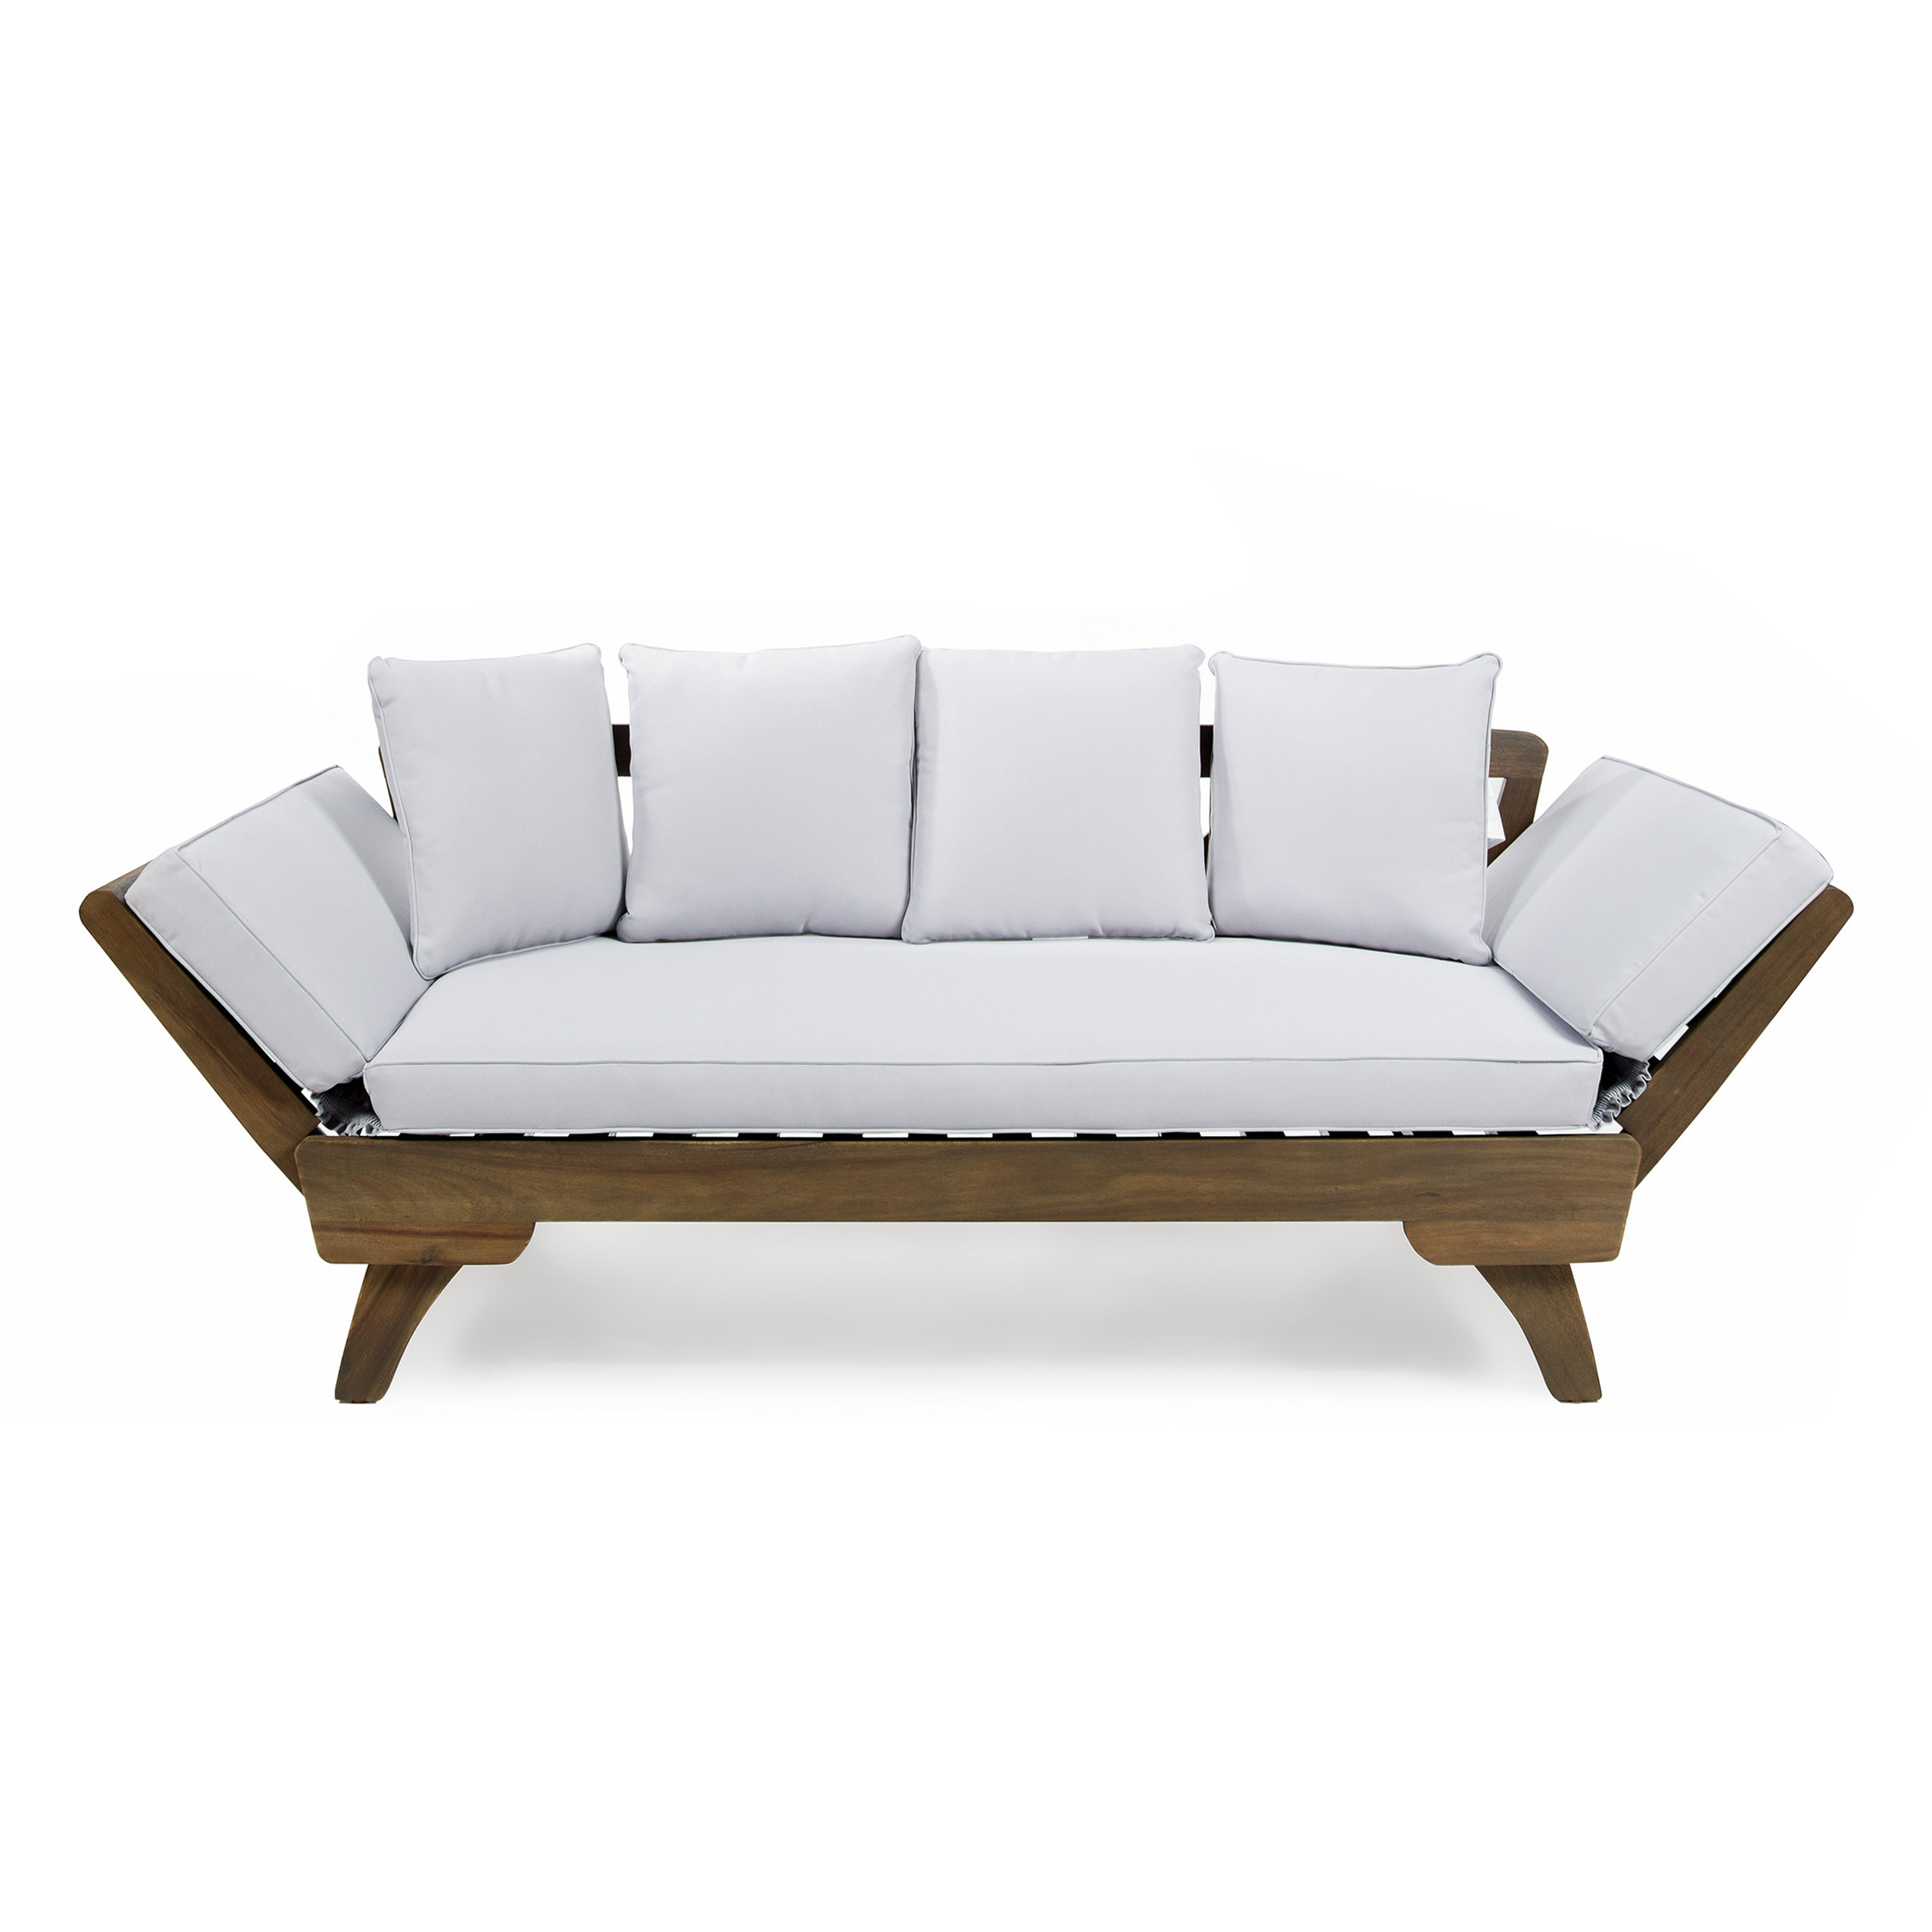 Lavina Outdoor Patio Daybeds With Cushions Regarding Most Popular Union Rustic Ellanti Teak Patio Daybed With Cushions (View 14 of 20)